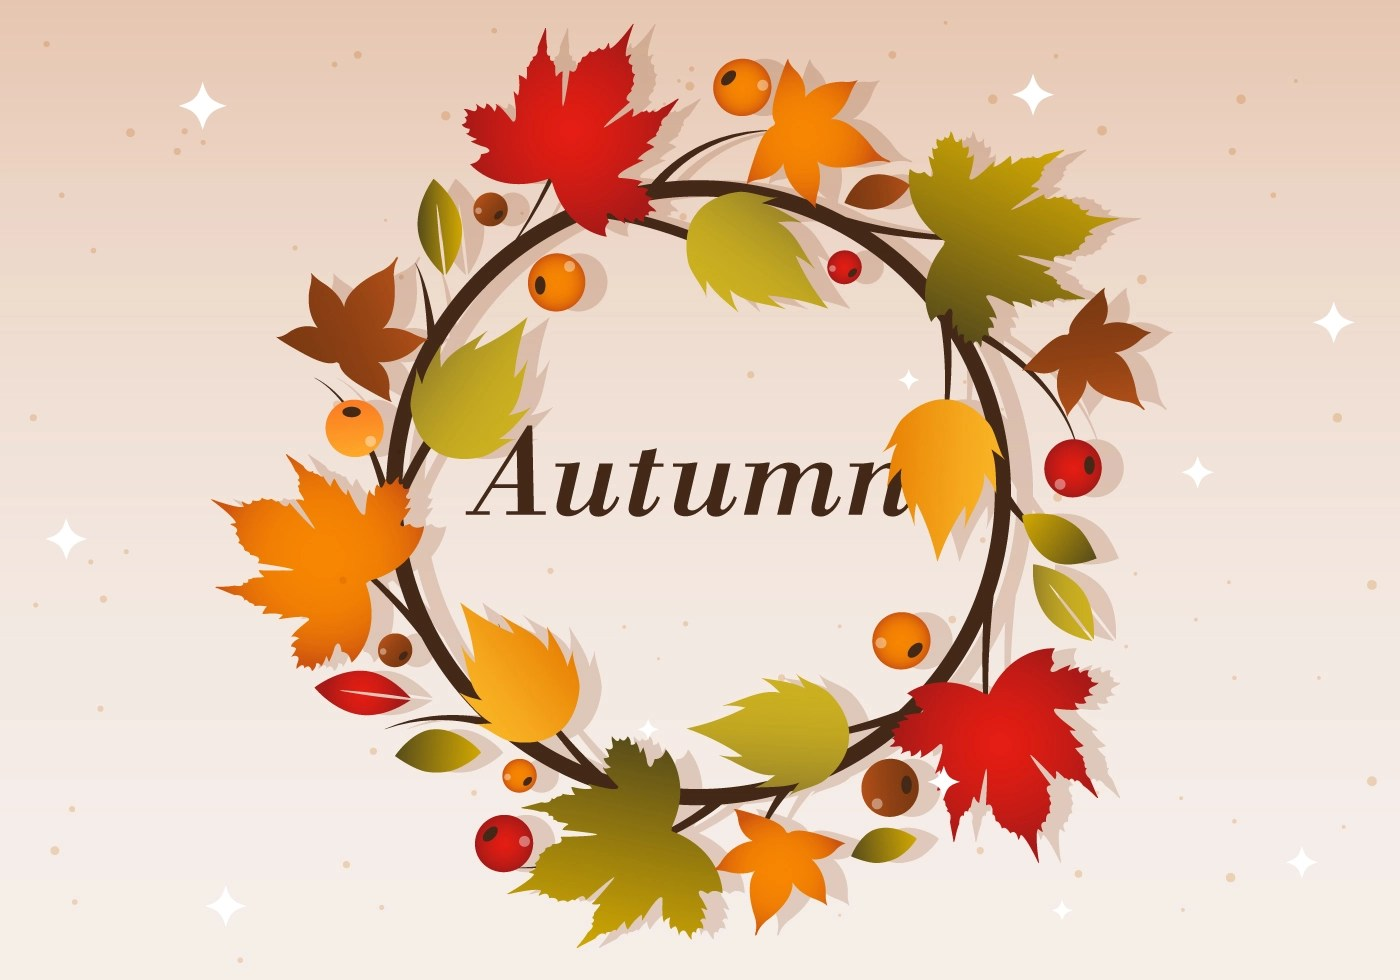 Fall Harvest Wallpaper Free Autumn Vector Wreath Illustration Download Free